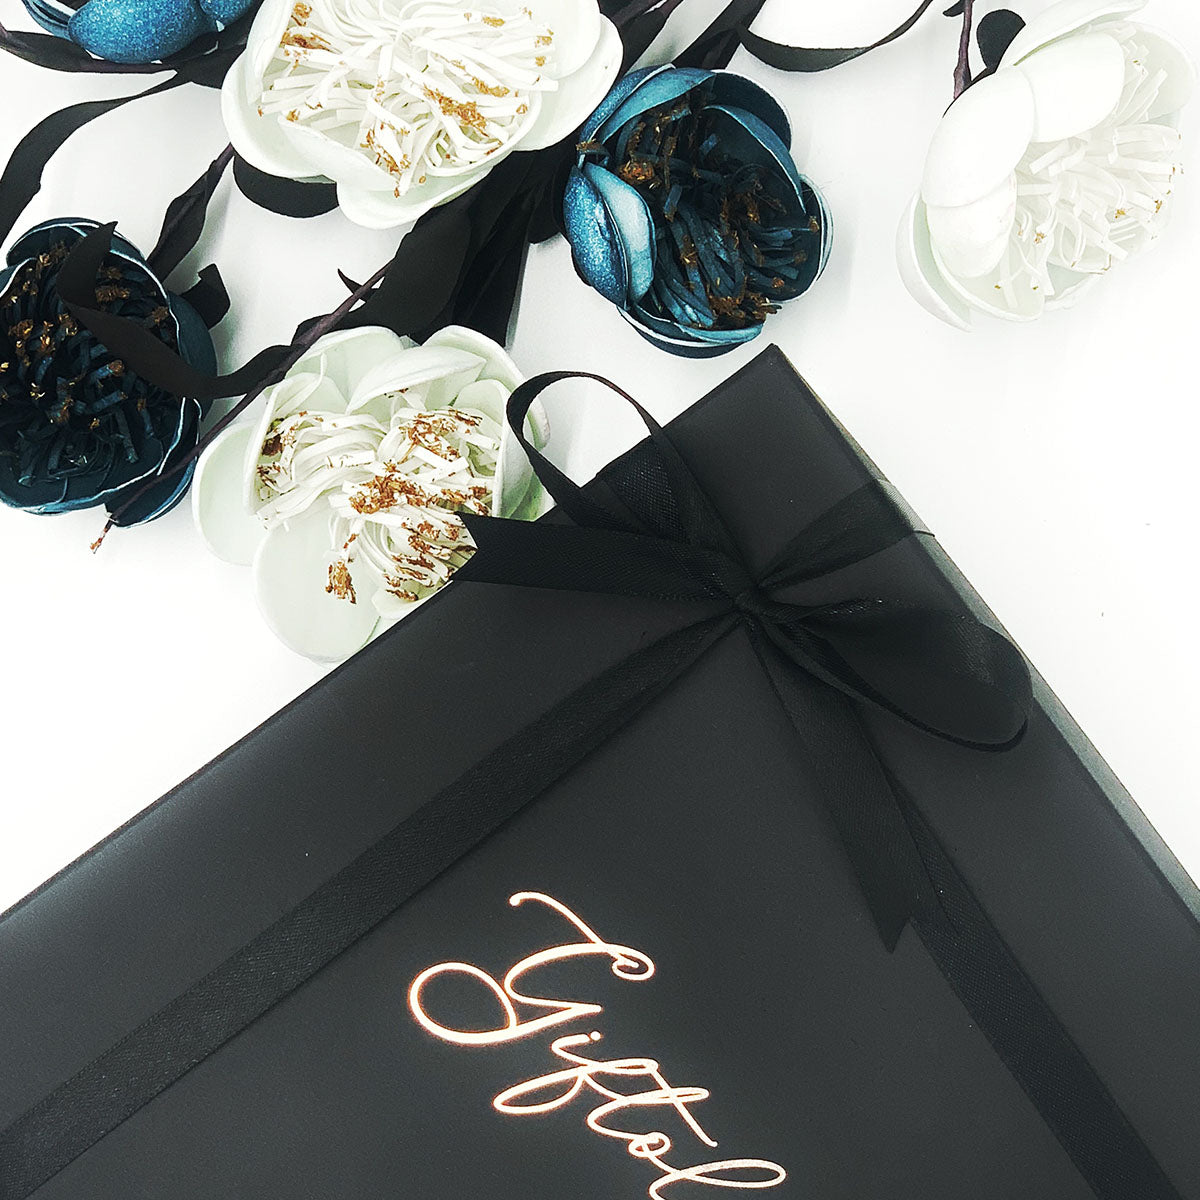 Gift Box/Gift Wrap & Card